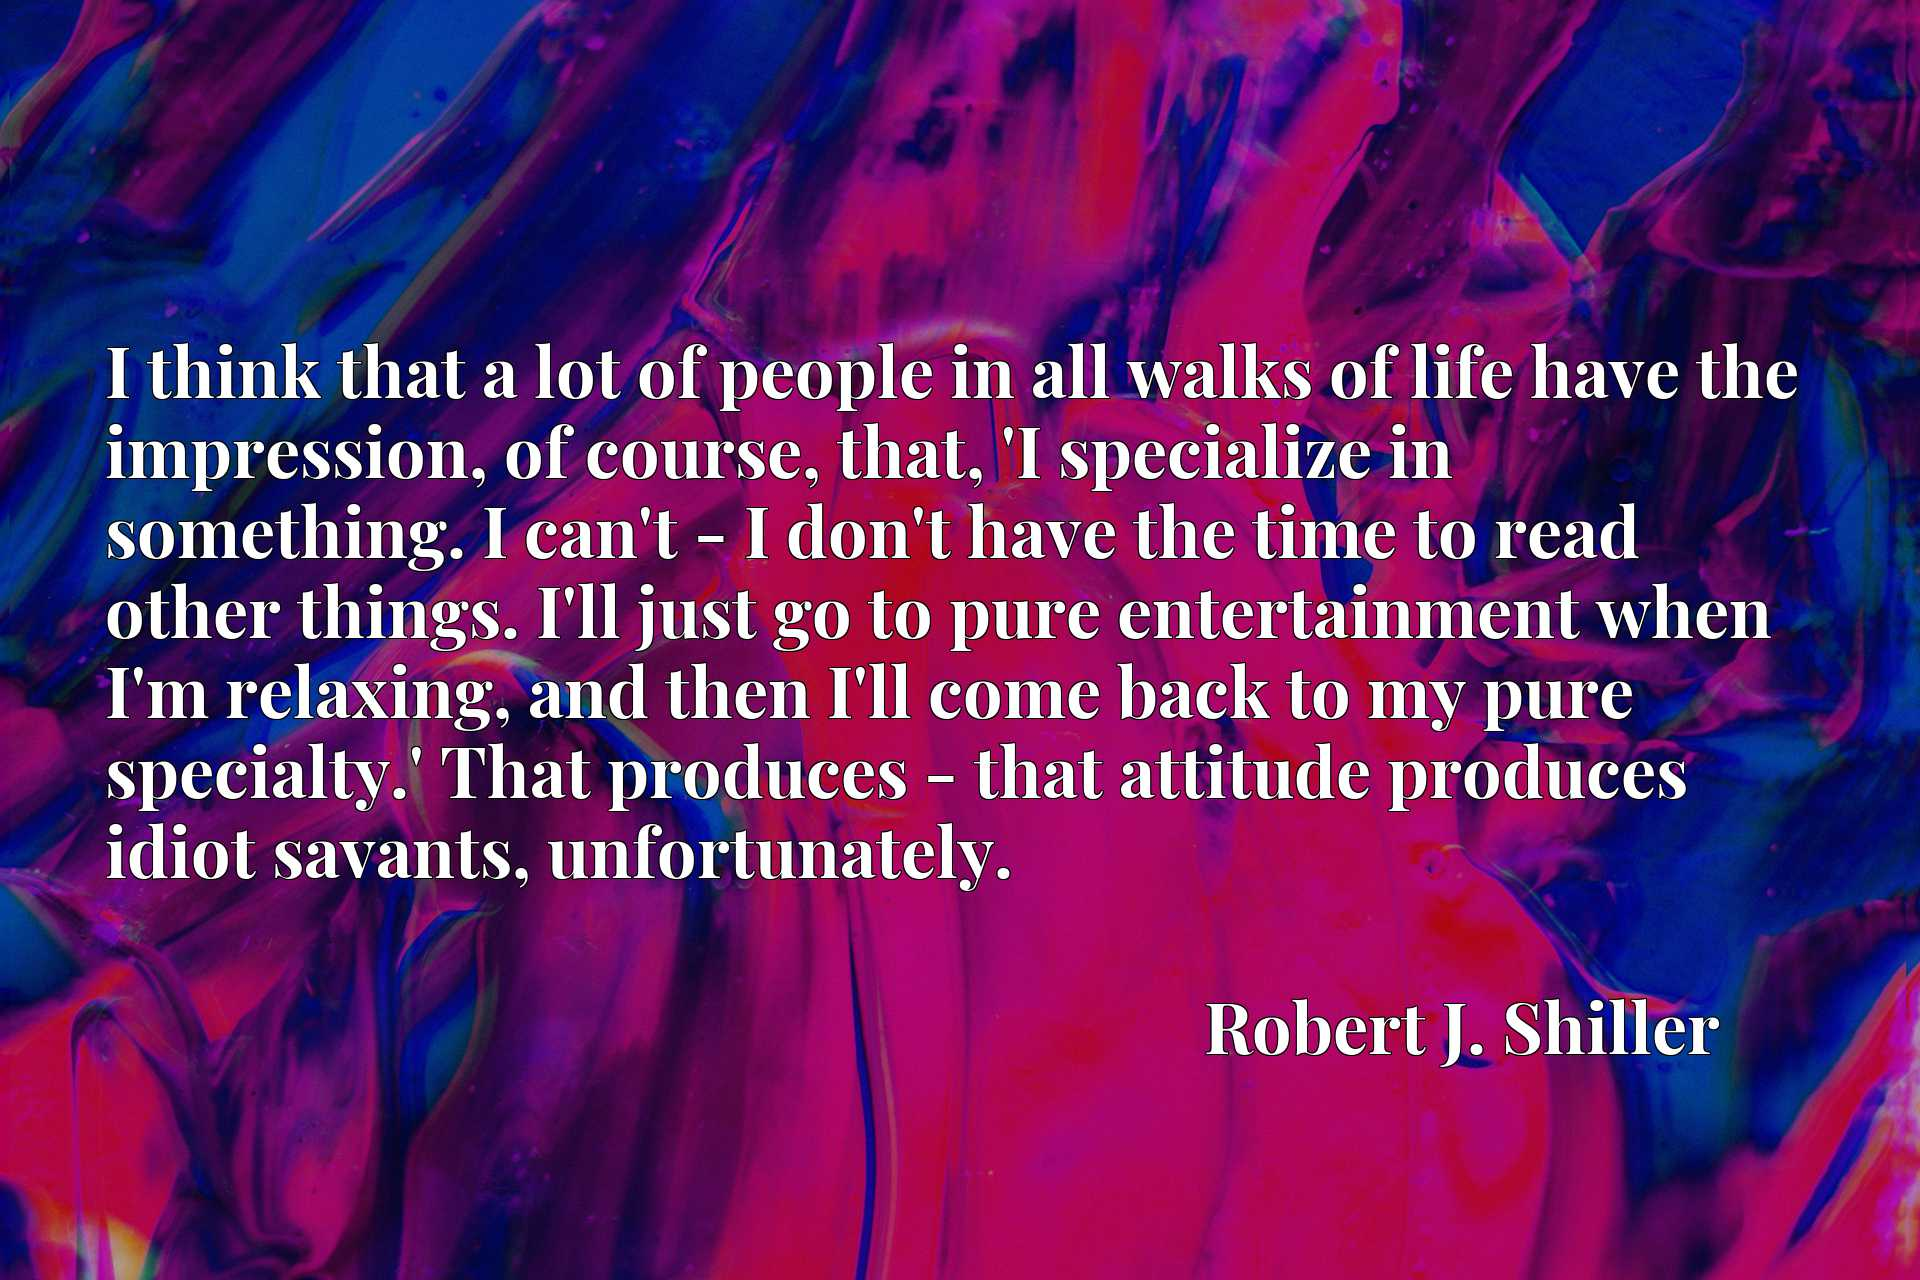 I think that a lot of people in all walks of life have the impression, of course, that, 'I specialize in something. I can't - I don't have the time to read other things. I'll just go to pure entertainment when I'm relaxing, and then I'll come back to my pure specialty.' That produces - that attitude produces idiot savants, unfortunately.